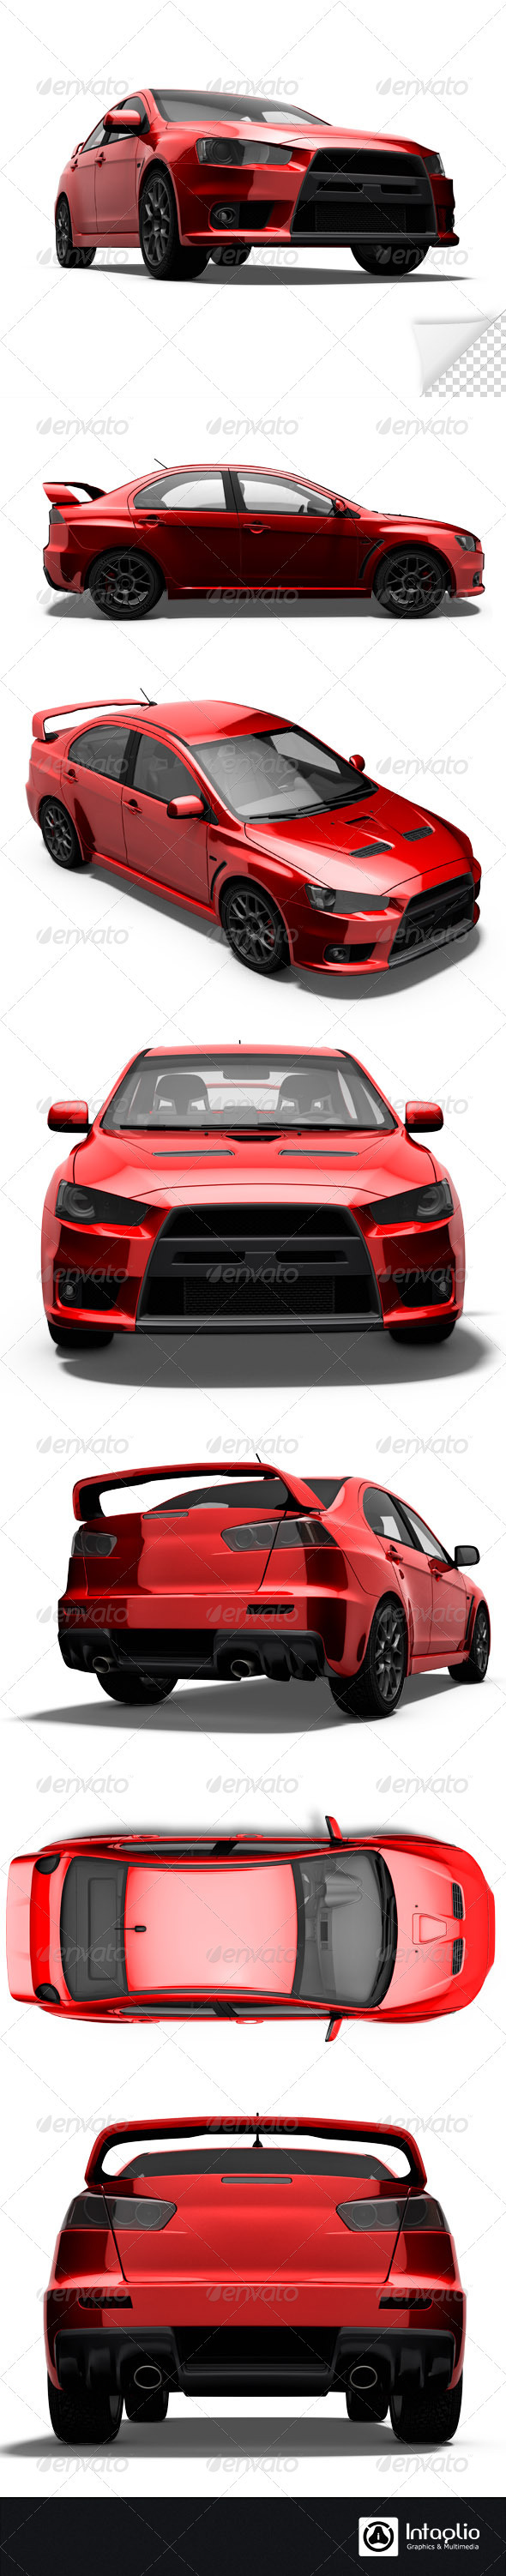 Red Rally Cars Render Bundle - 3D Renders Graphics